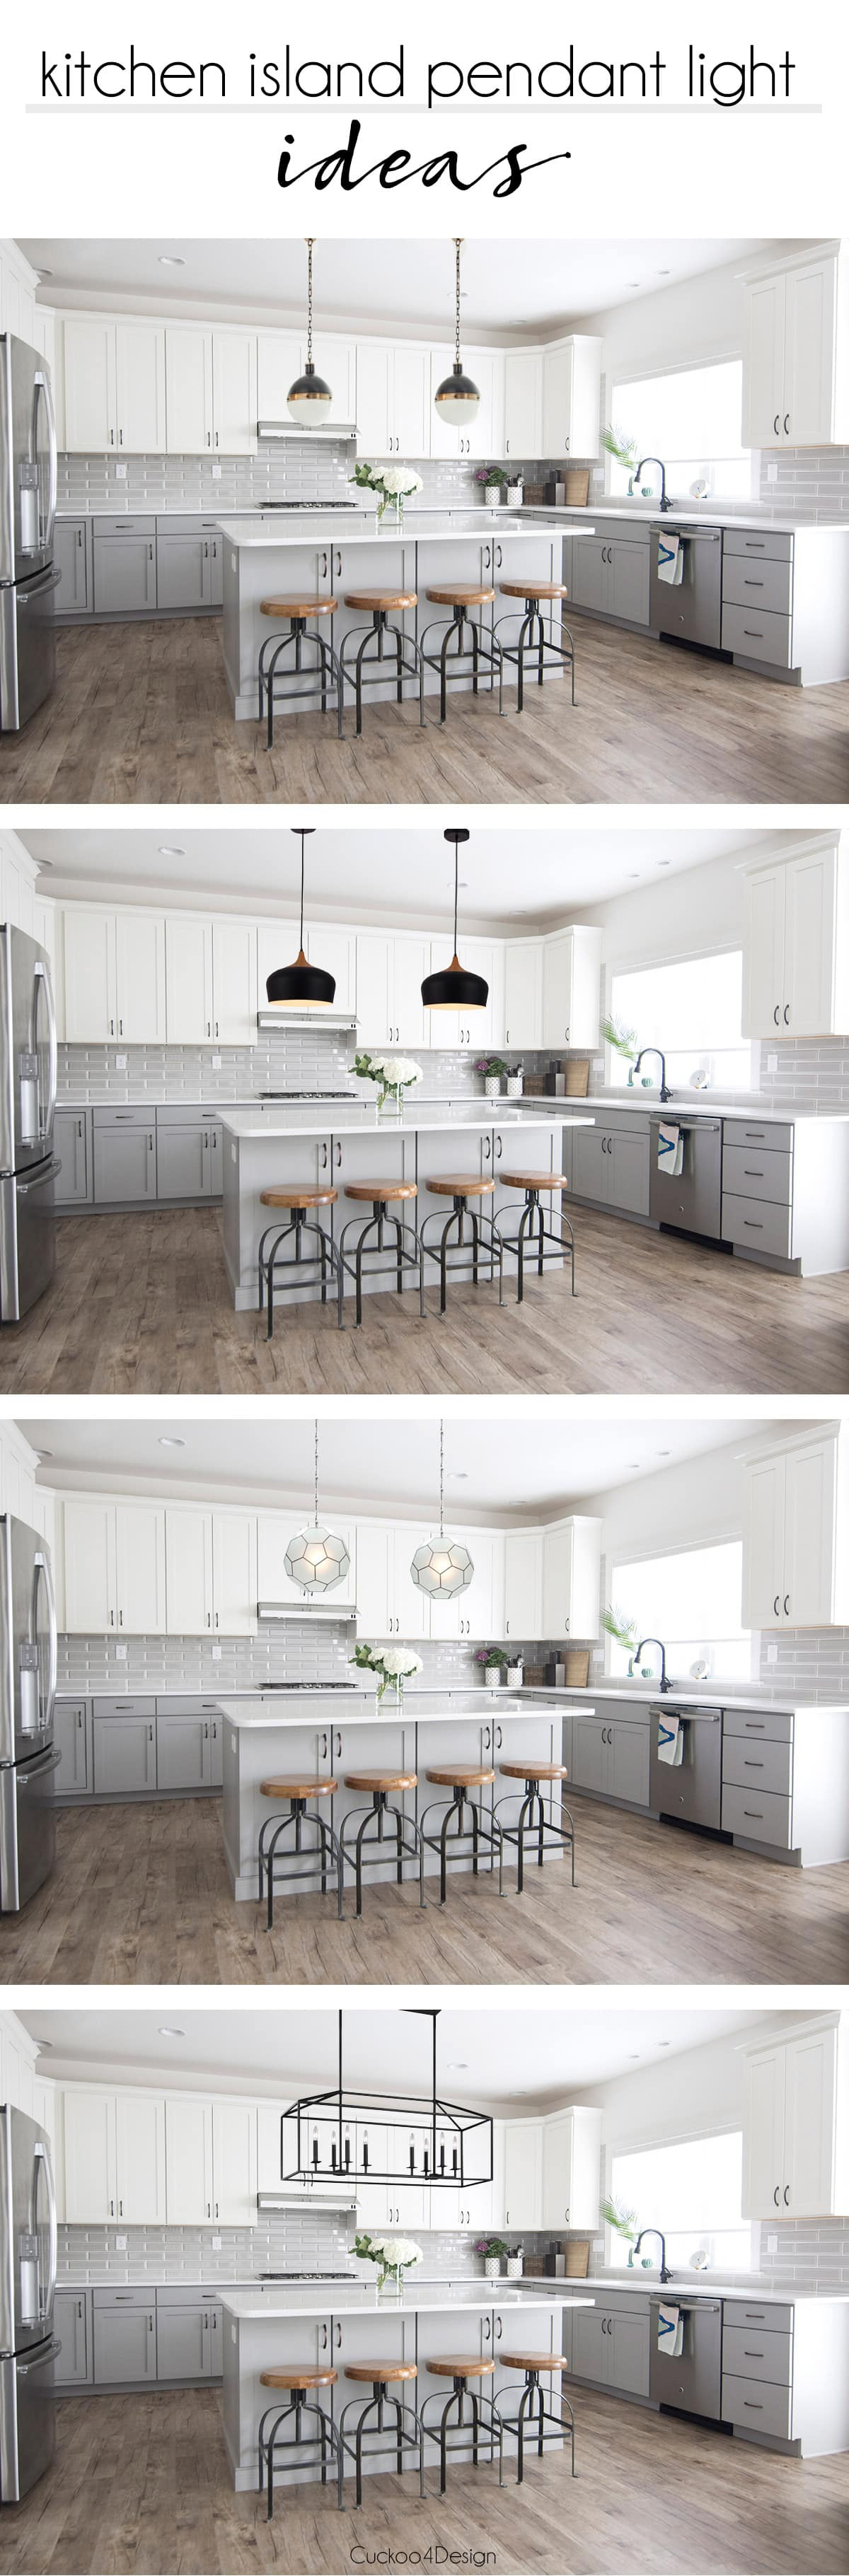 My Friends Gorgeous Gray And White Kitchen CuckooDesign - Large island pendants